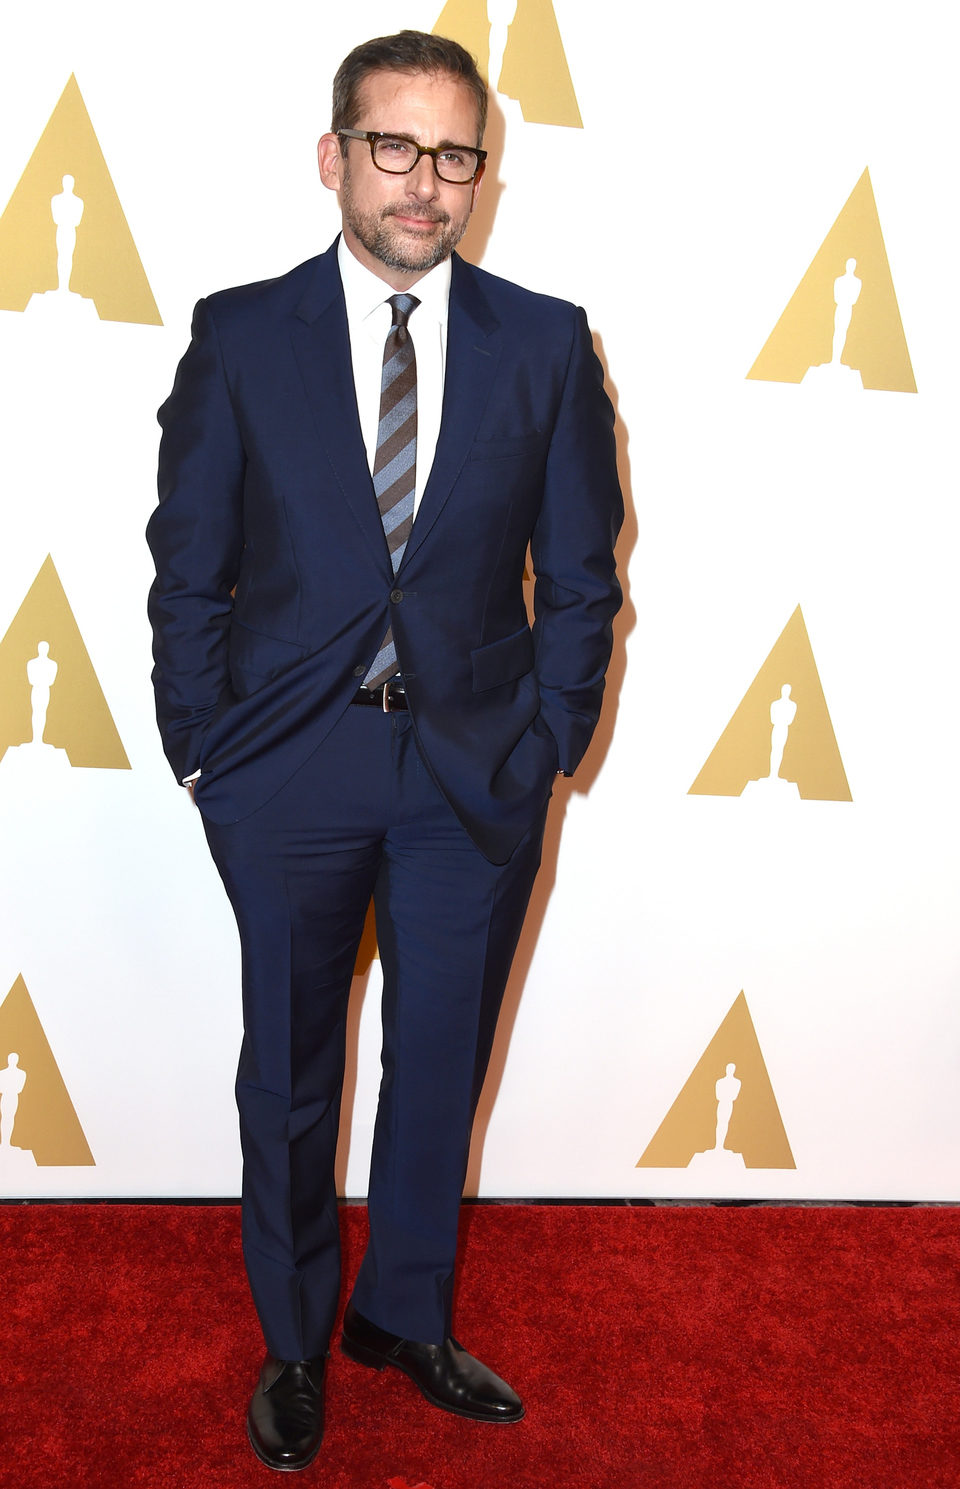 Steve Carell at the Oscars' Nominees Luncheon 2015